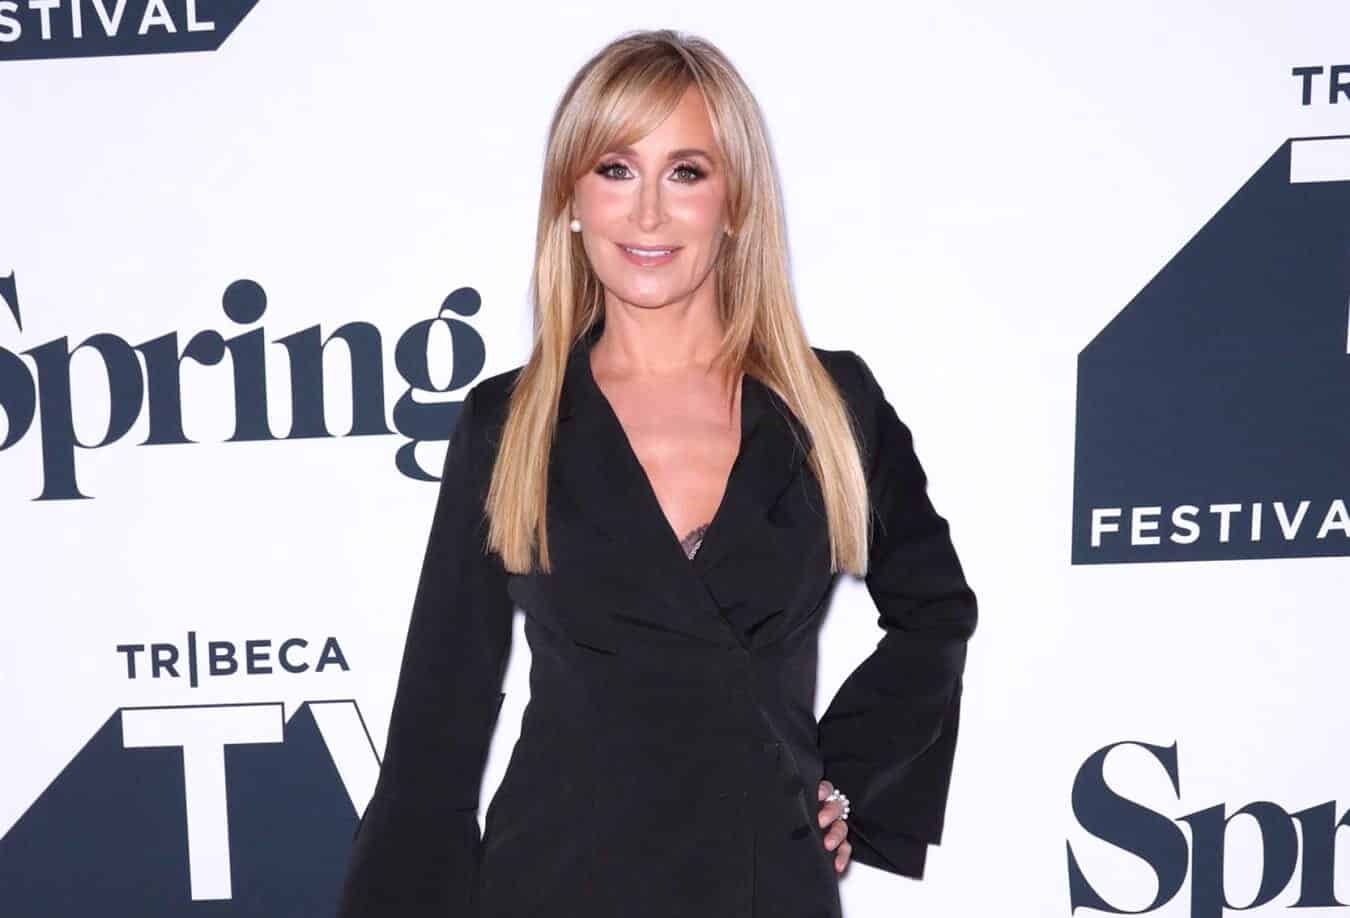 Sonja Morgan Is Raking In The Cameo Cash As It's Revealed The RHONY Star Is One Of The Site's Top Earners, Plus Find Out The Outrageous Price One RHONY Alum Is Charging